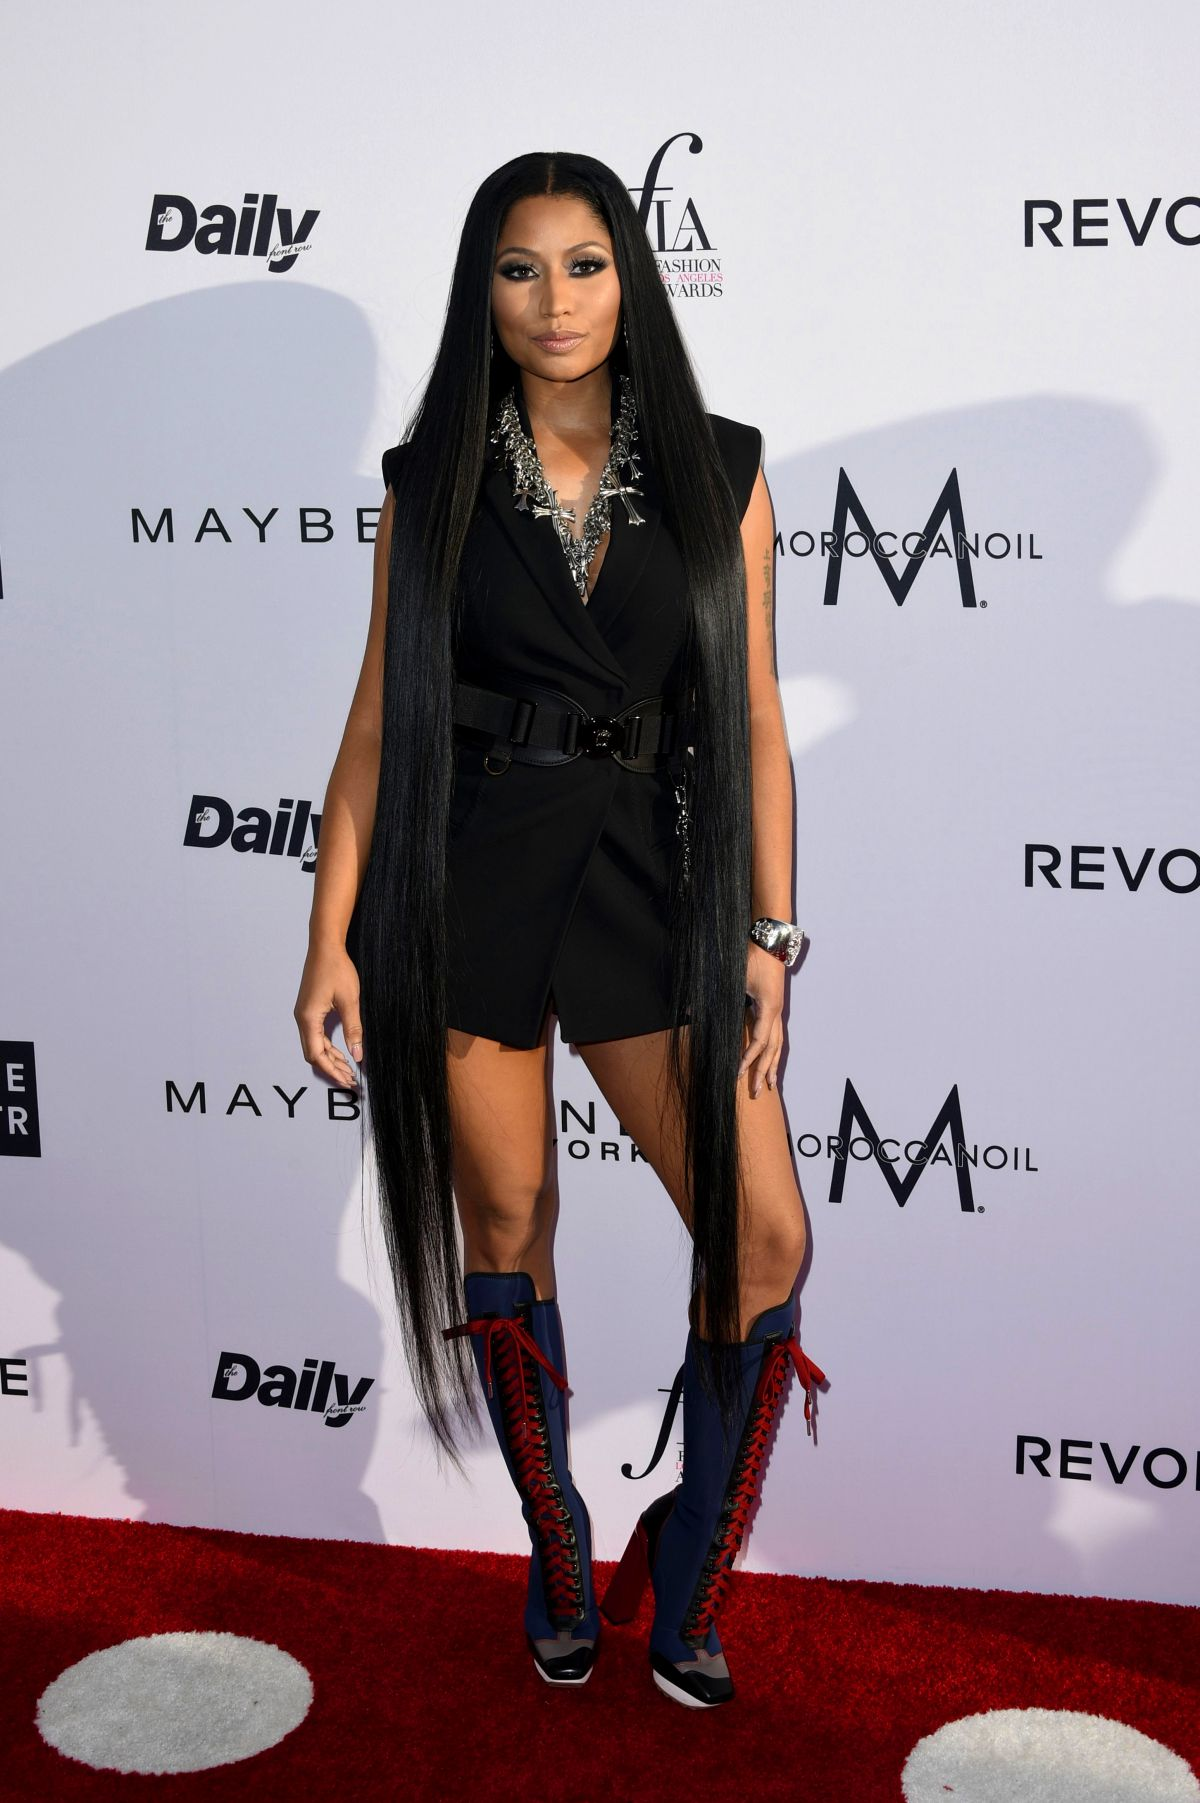 Nicki Minaj At Daily Front Row's 3rd Annual Fashion Los Angeles Awards – West Hollywood   nicki-minaj-at-daily-front-row-s-3rd-annual-fashion-los-angeles-awards-west-hollywood_7